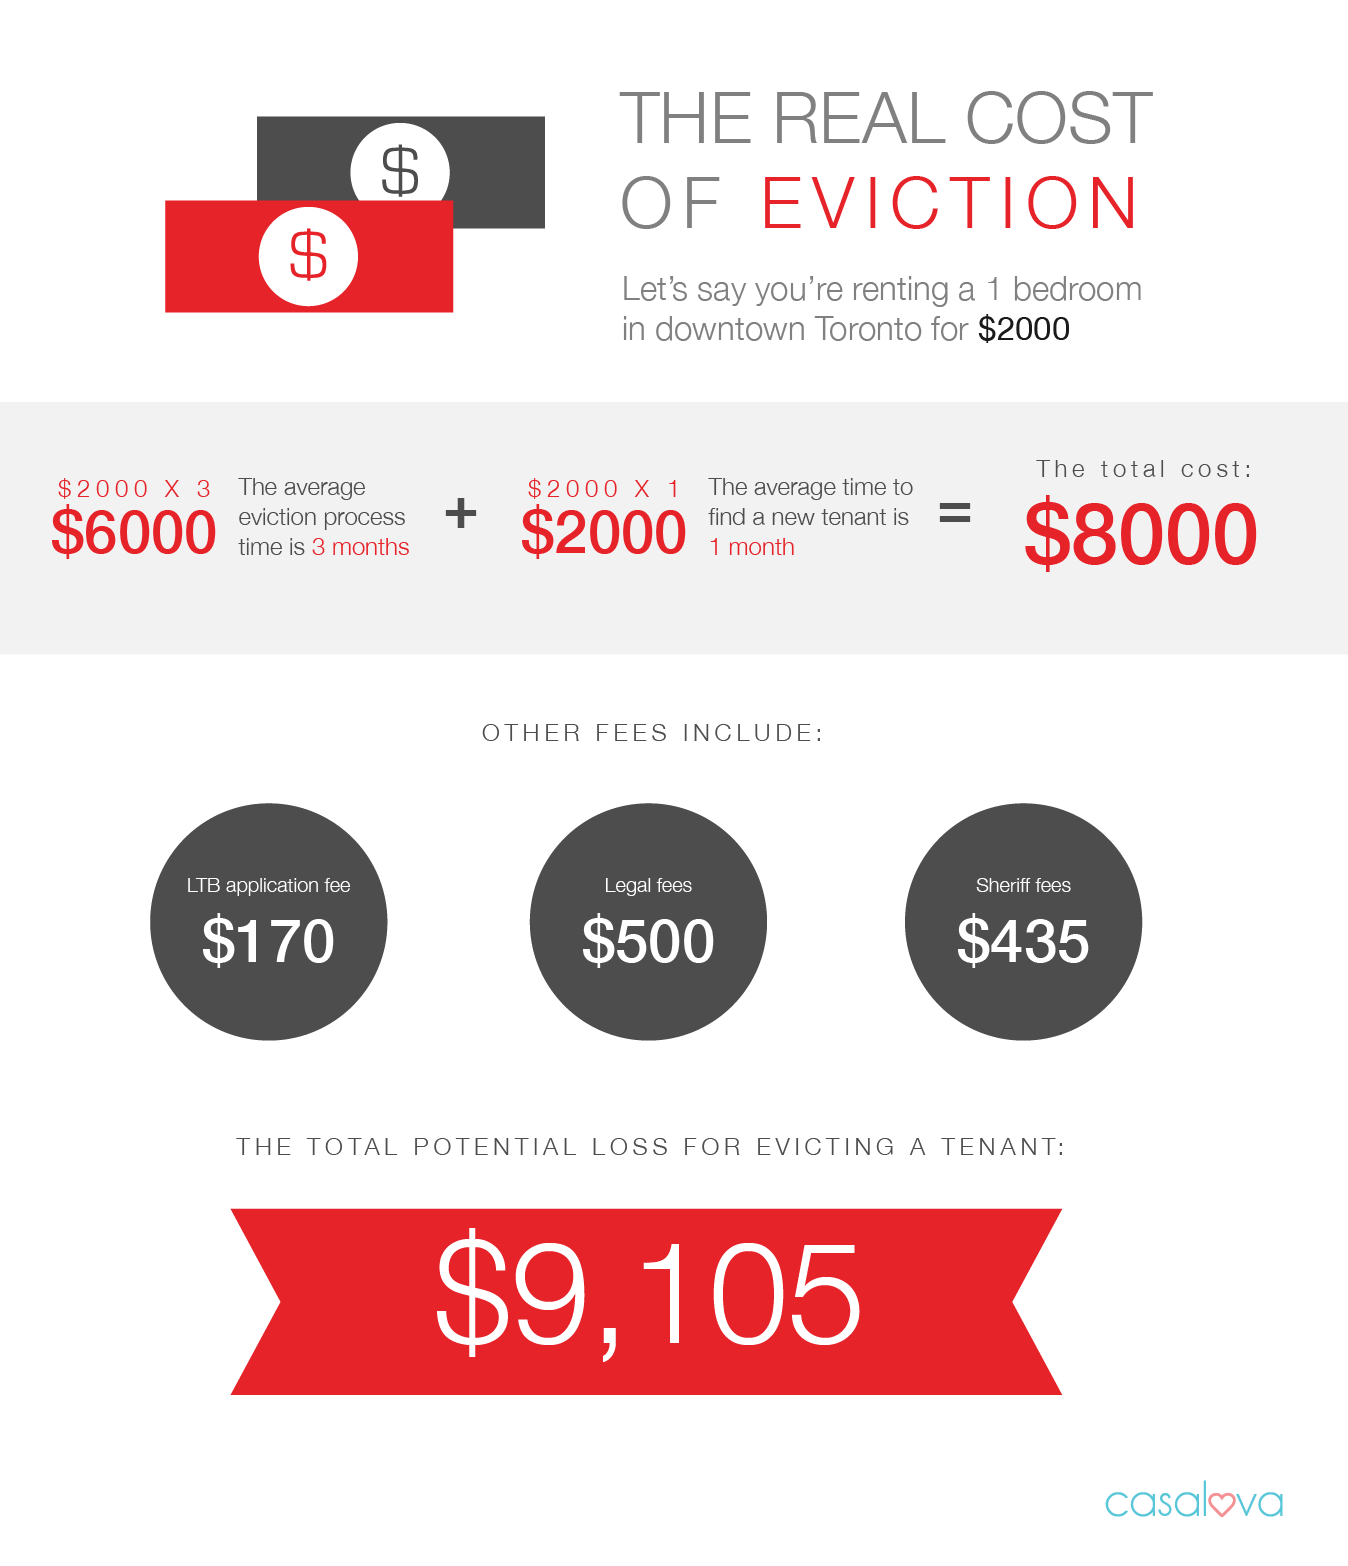 How to Evict a Tenant for Non-Payment of Rent - Casalova